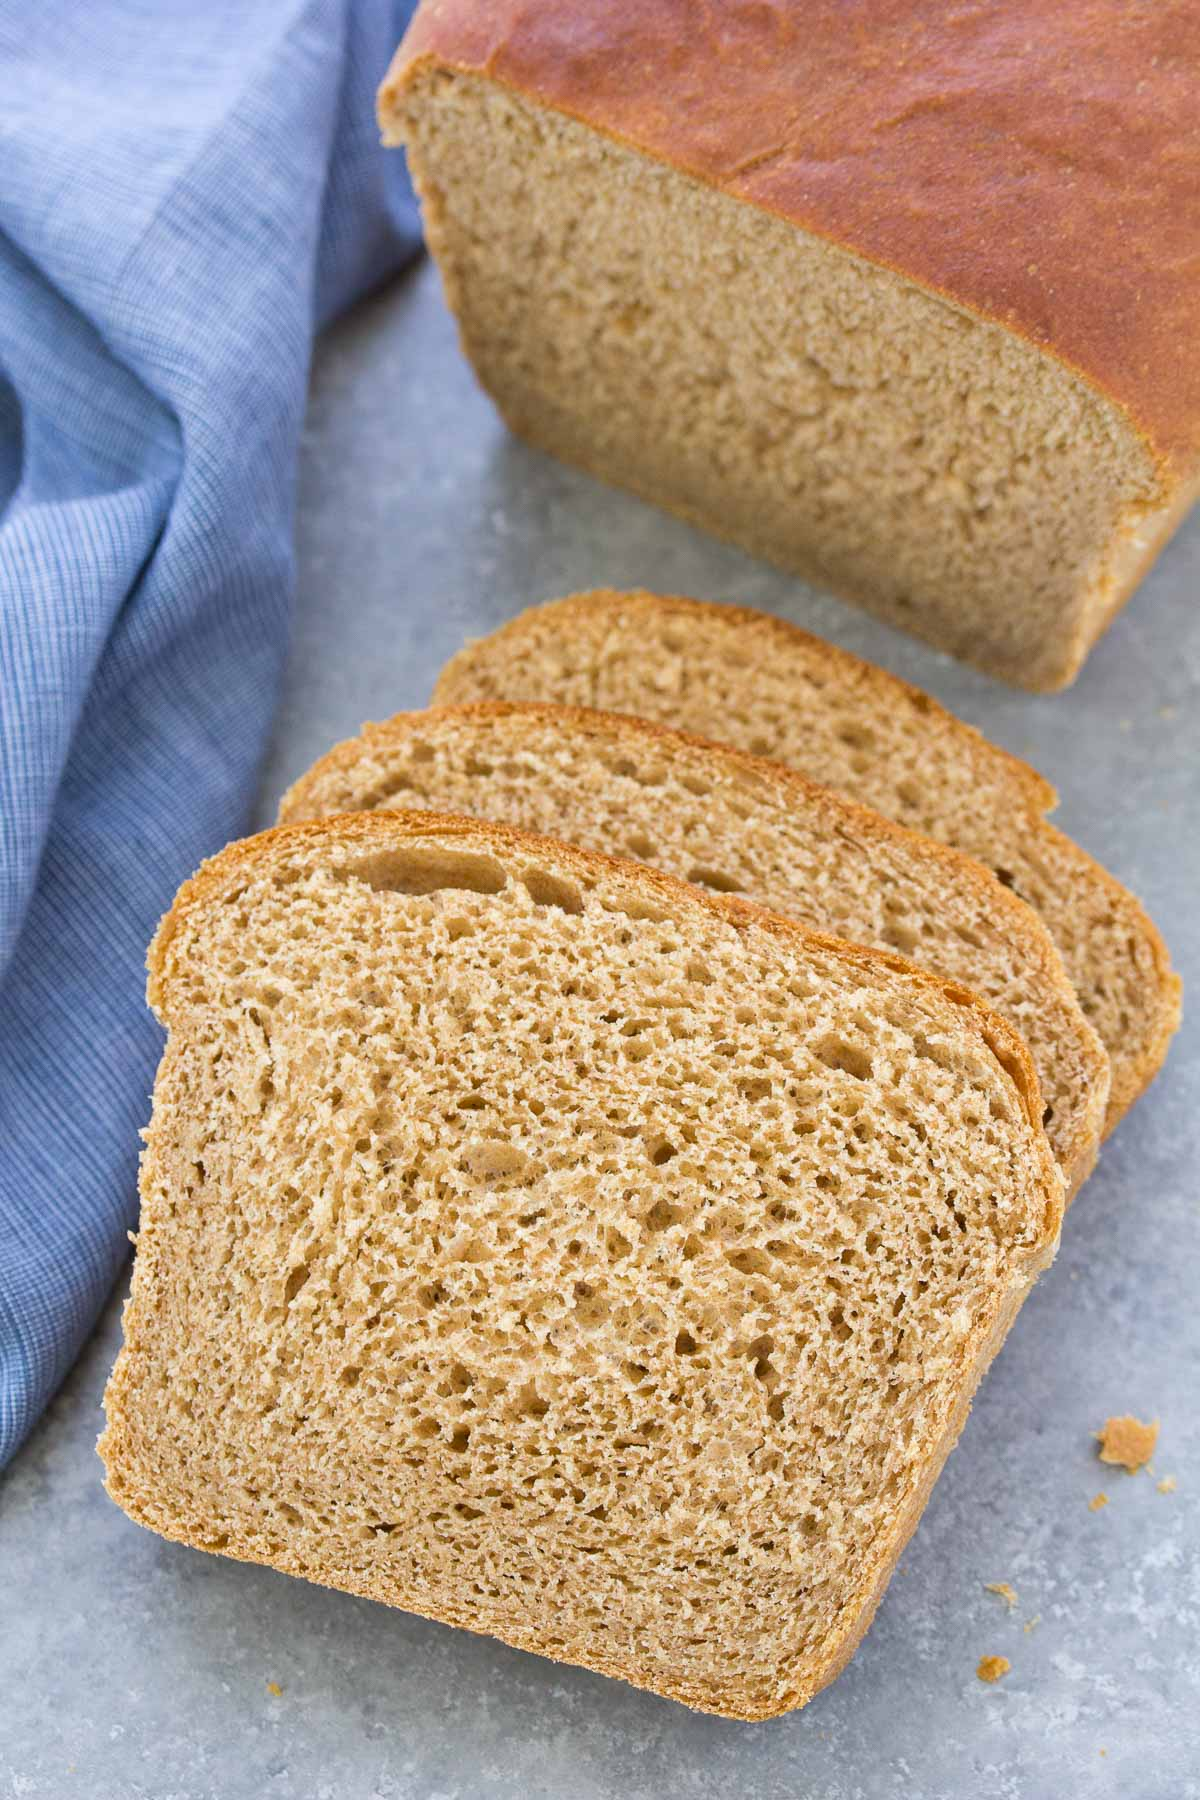 Three slices of homemade whole wheat bread with a loaf in the background.